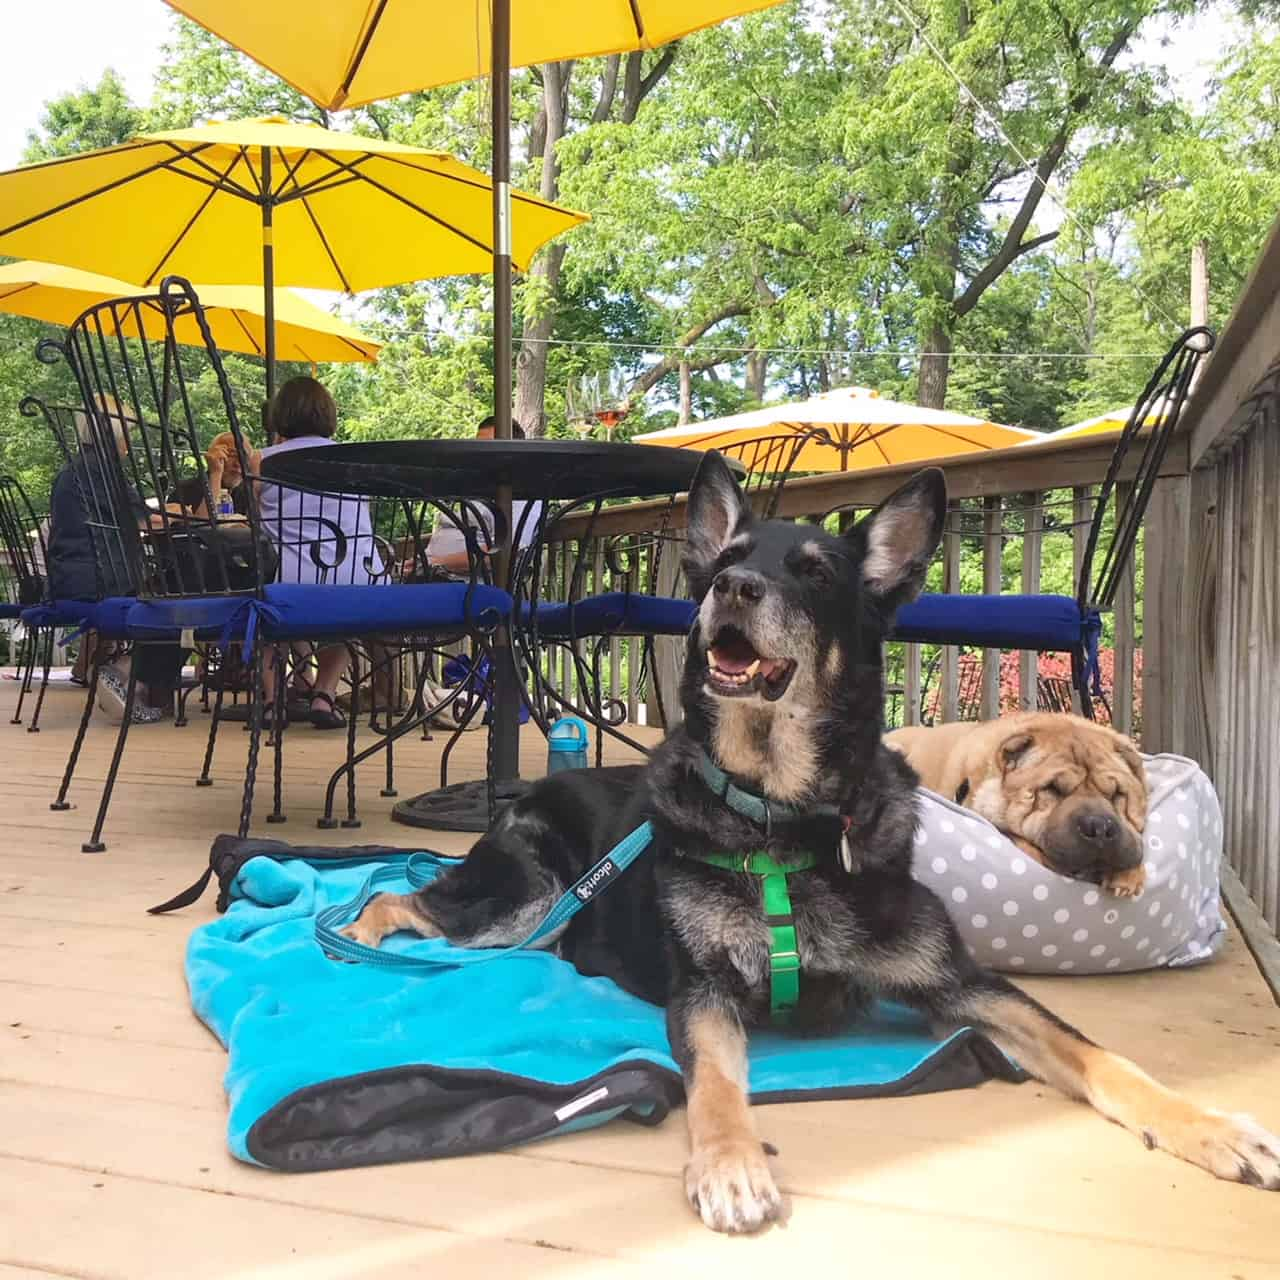 German Shepherd Dog and Shar-pei on the patio at a pet friendly winery in the Finger Lakes, NY